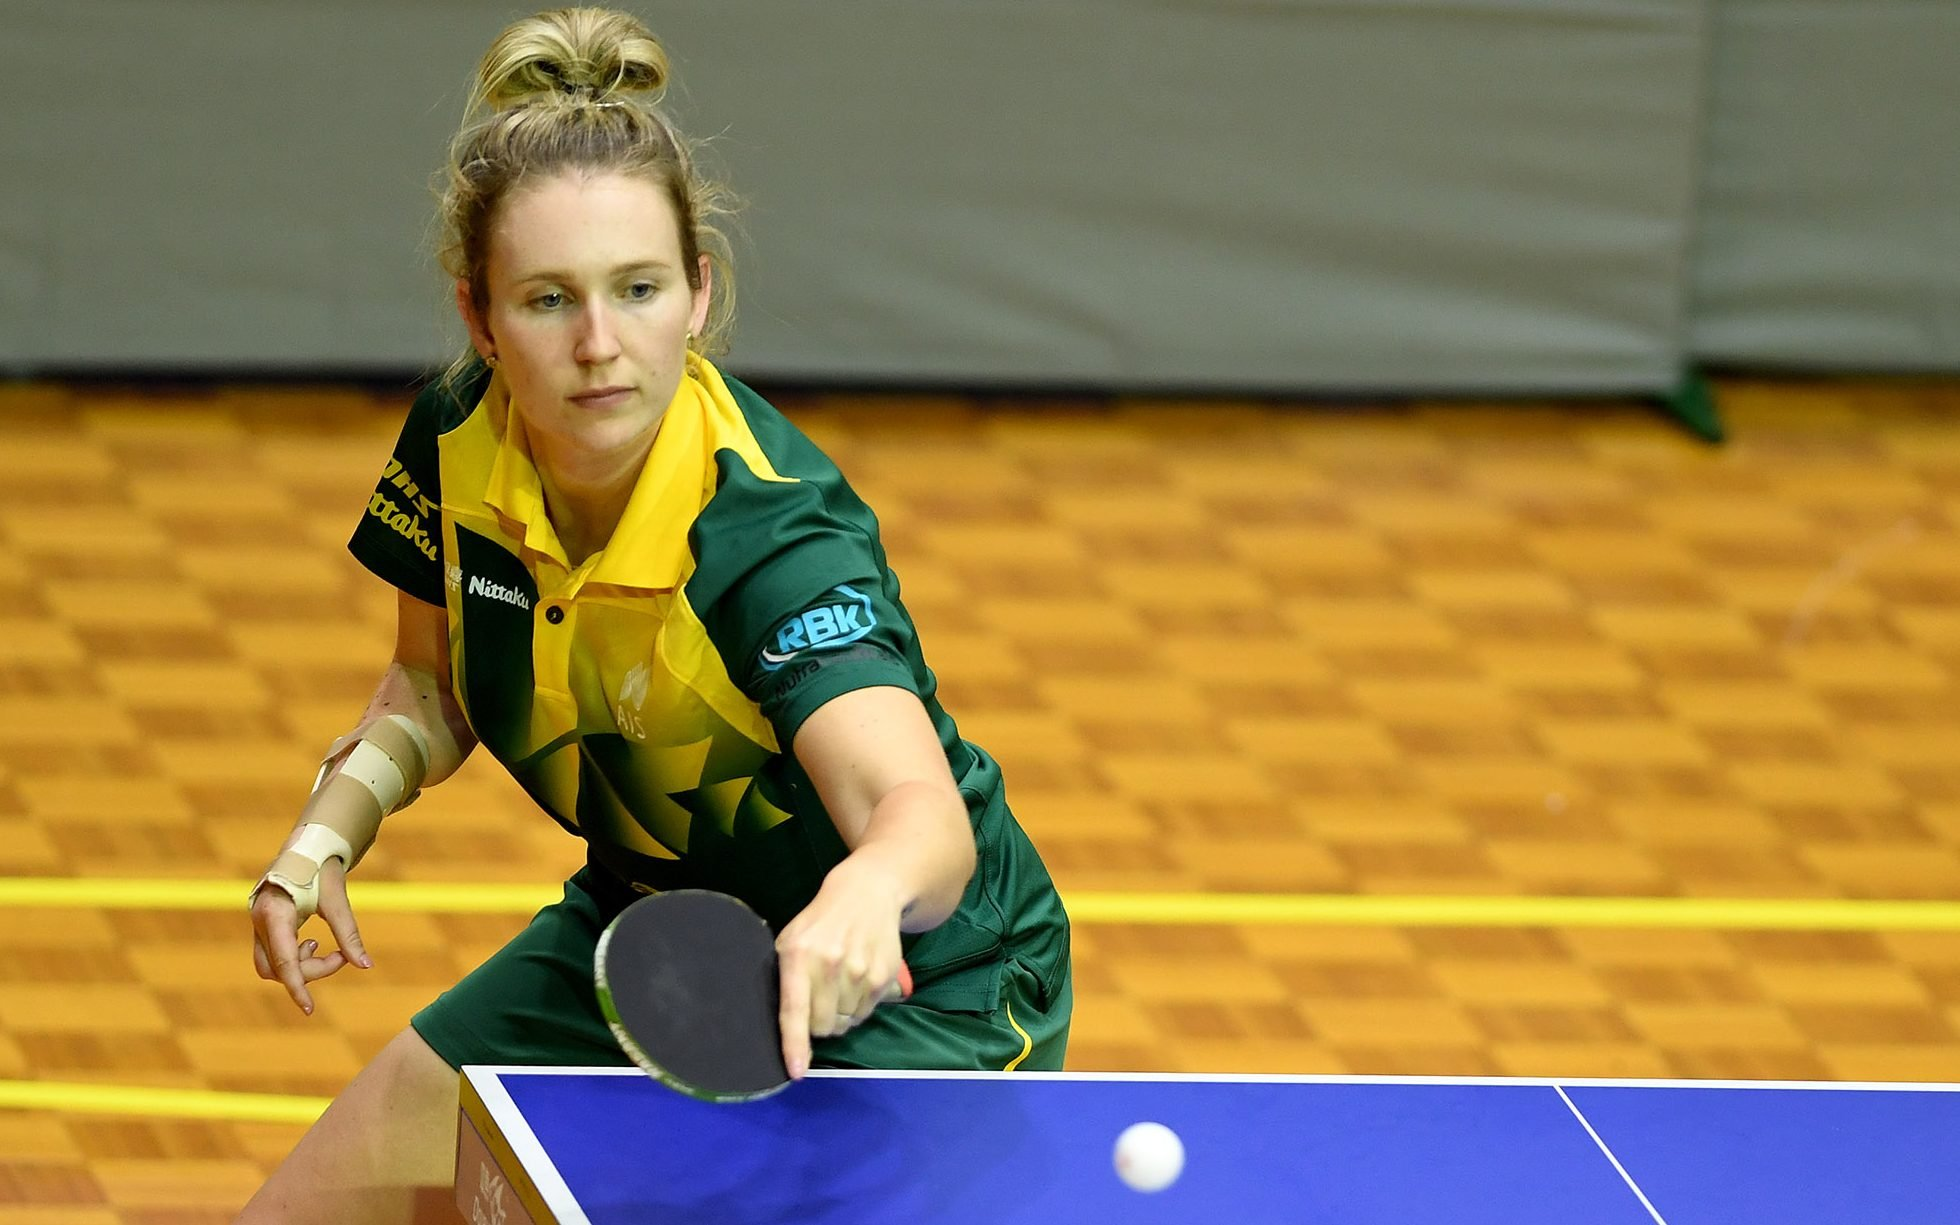 Competition heats up for Para-table tennis athletes at the Arafura Games